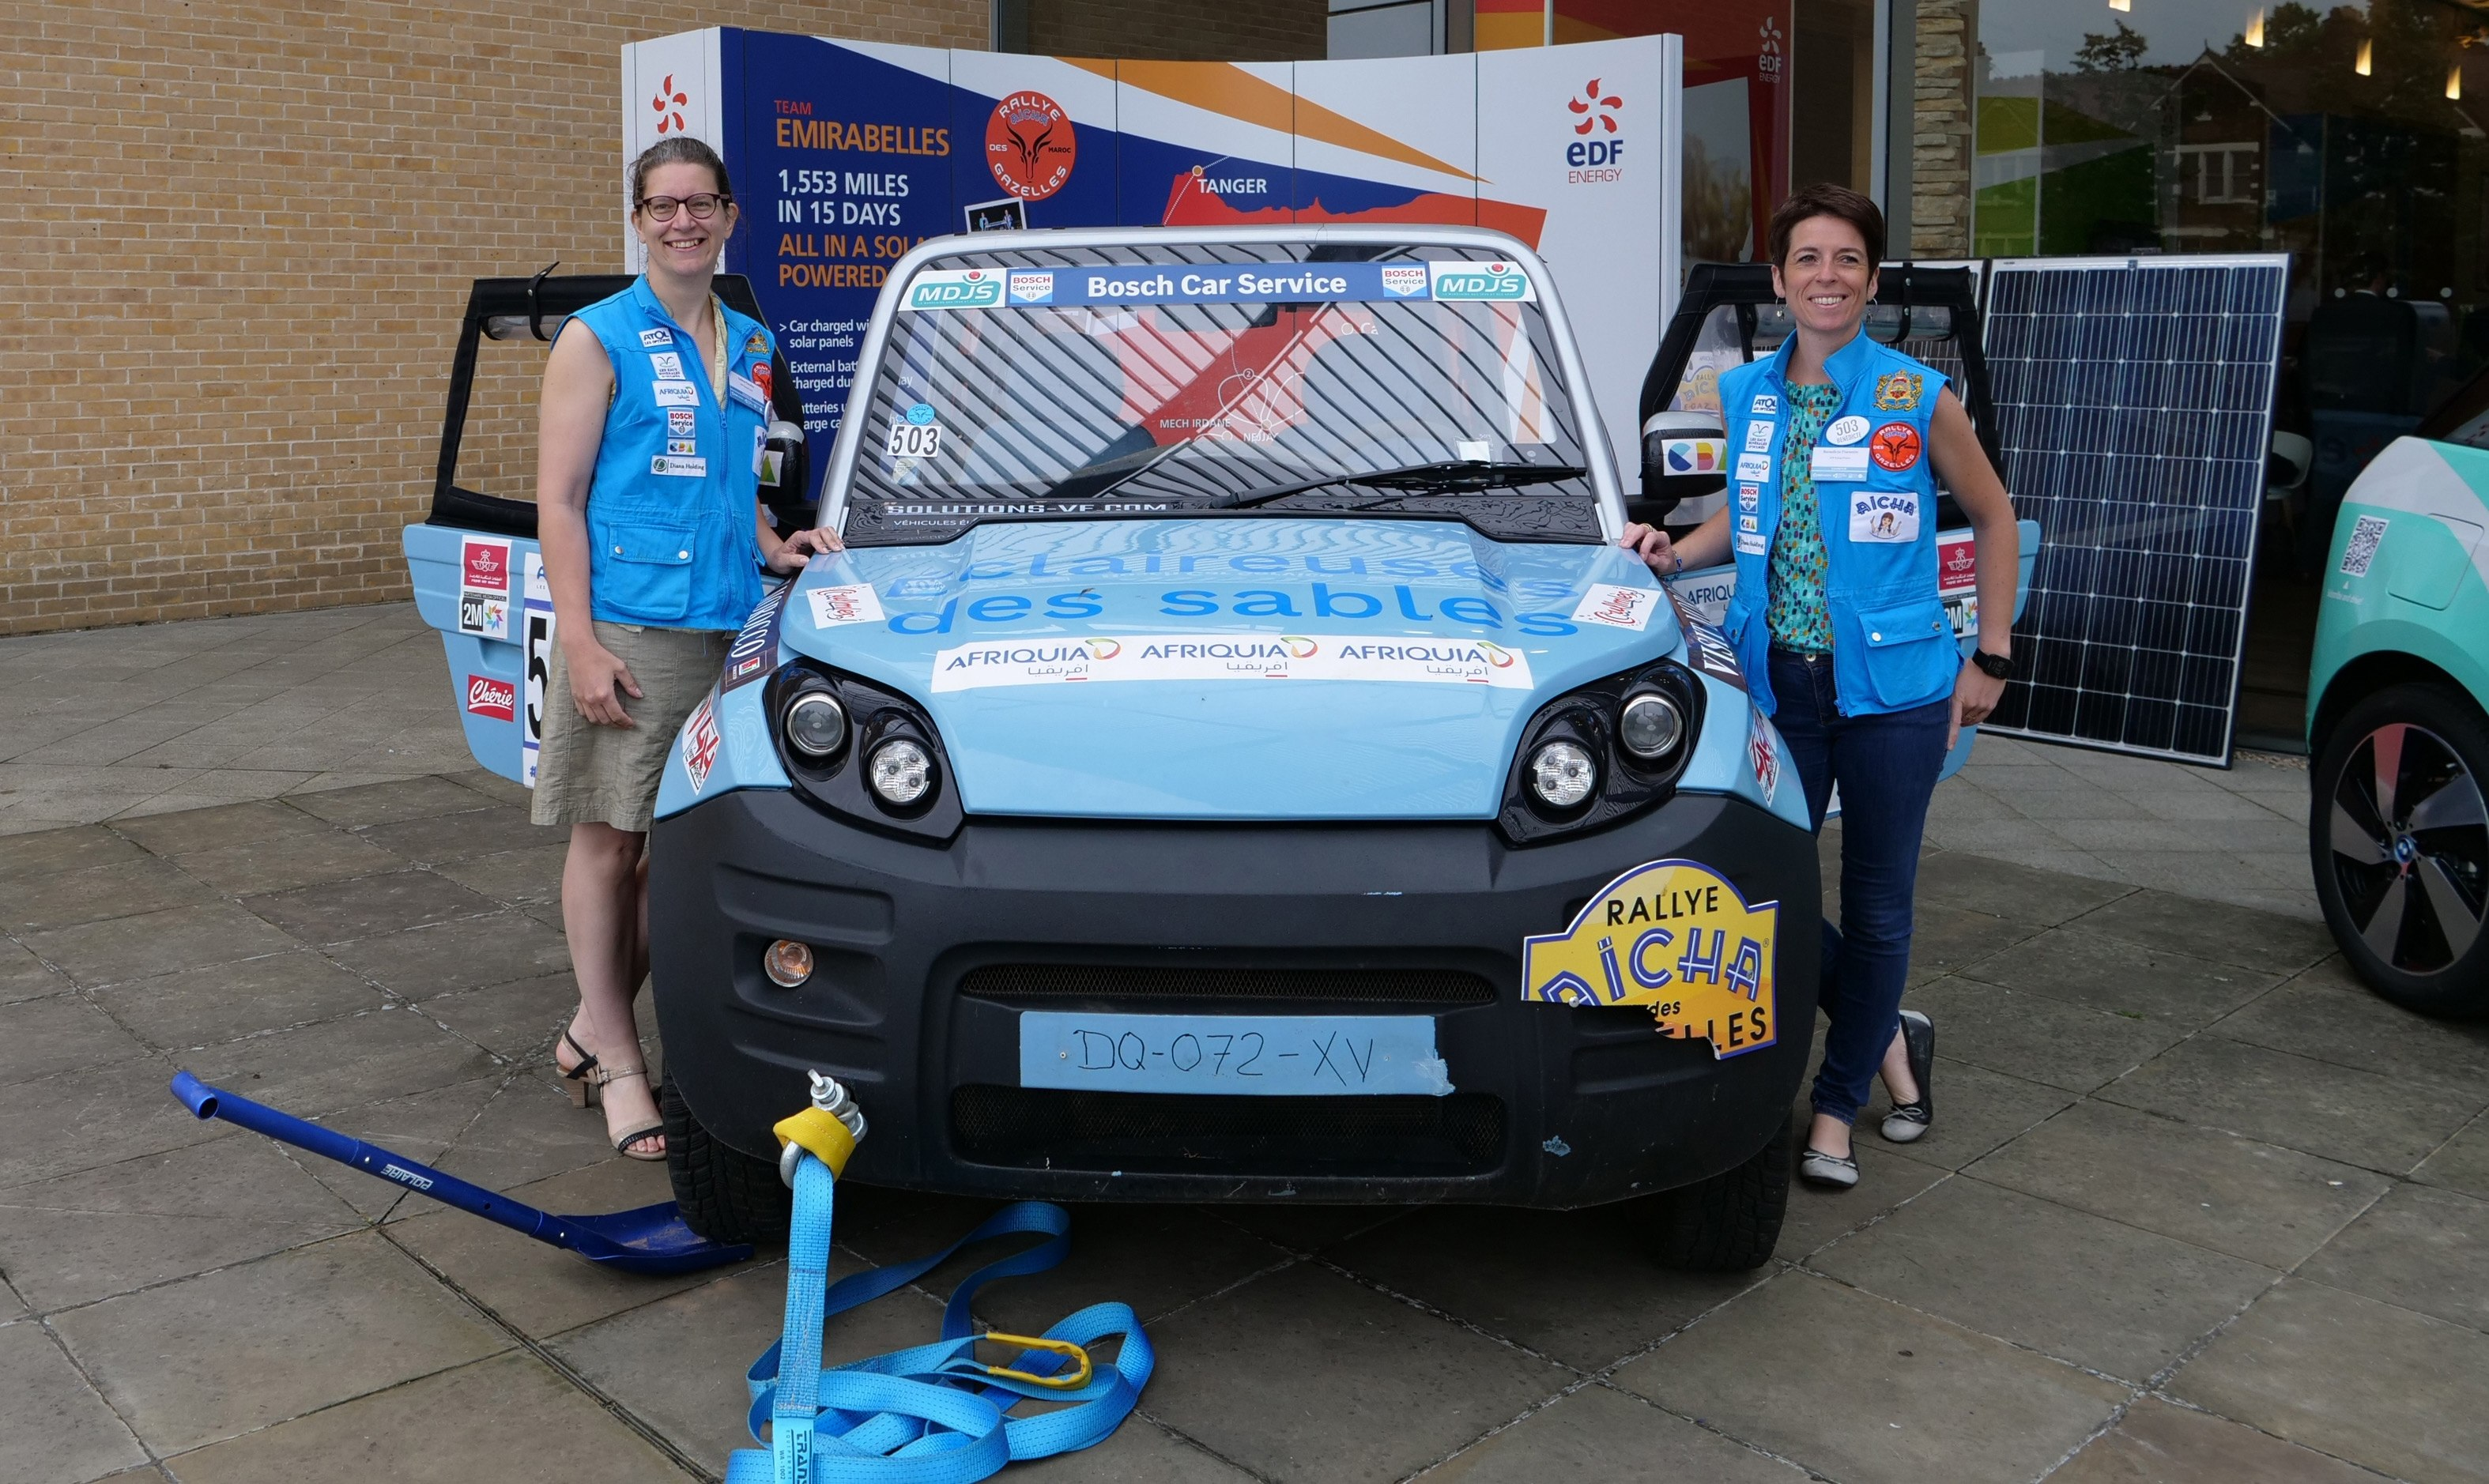 """The Emirabelles showing off their solar powered 4x4 from the """"rallye des Gazelles"""" at the Oxford EV Summit."""